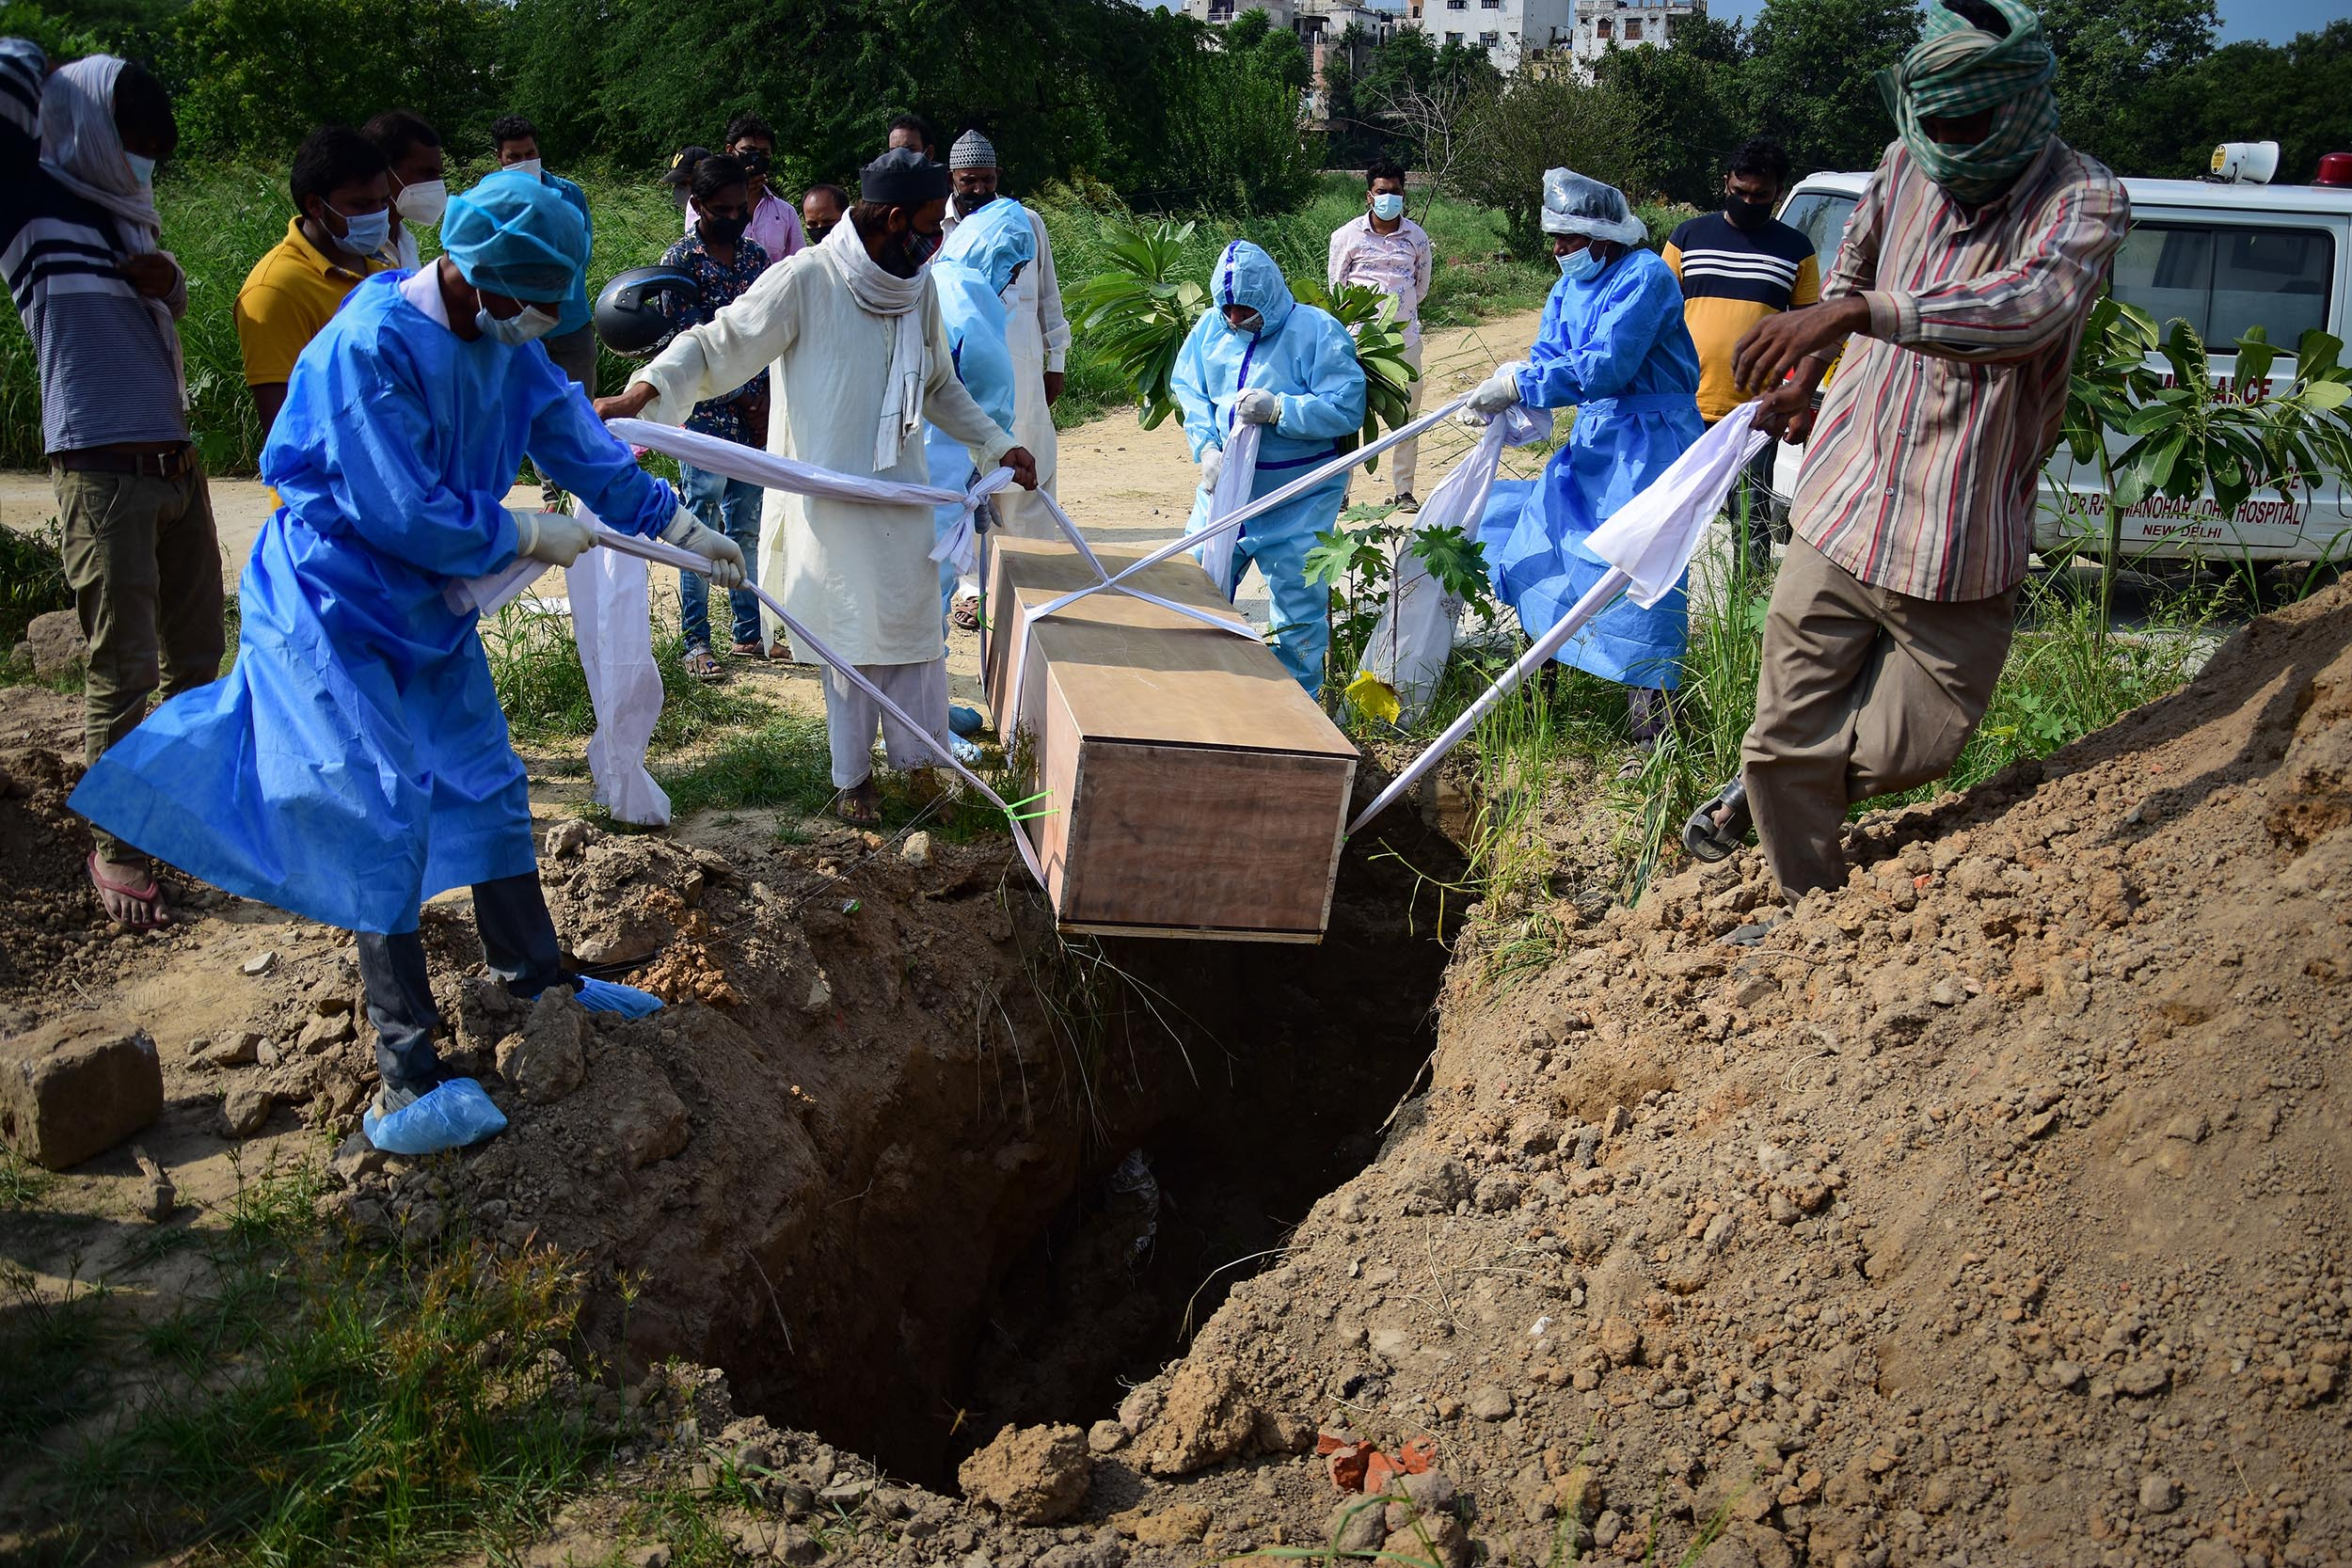 Relatives wearing personal protective equipment (PPE) as a precaution lower the body of a COVID-19 victim for burial at a graveyard in New Delhi, India.